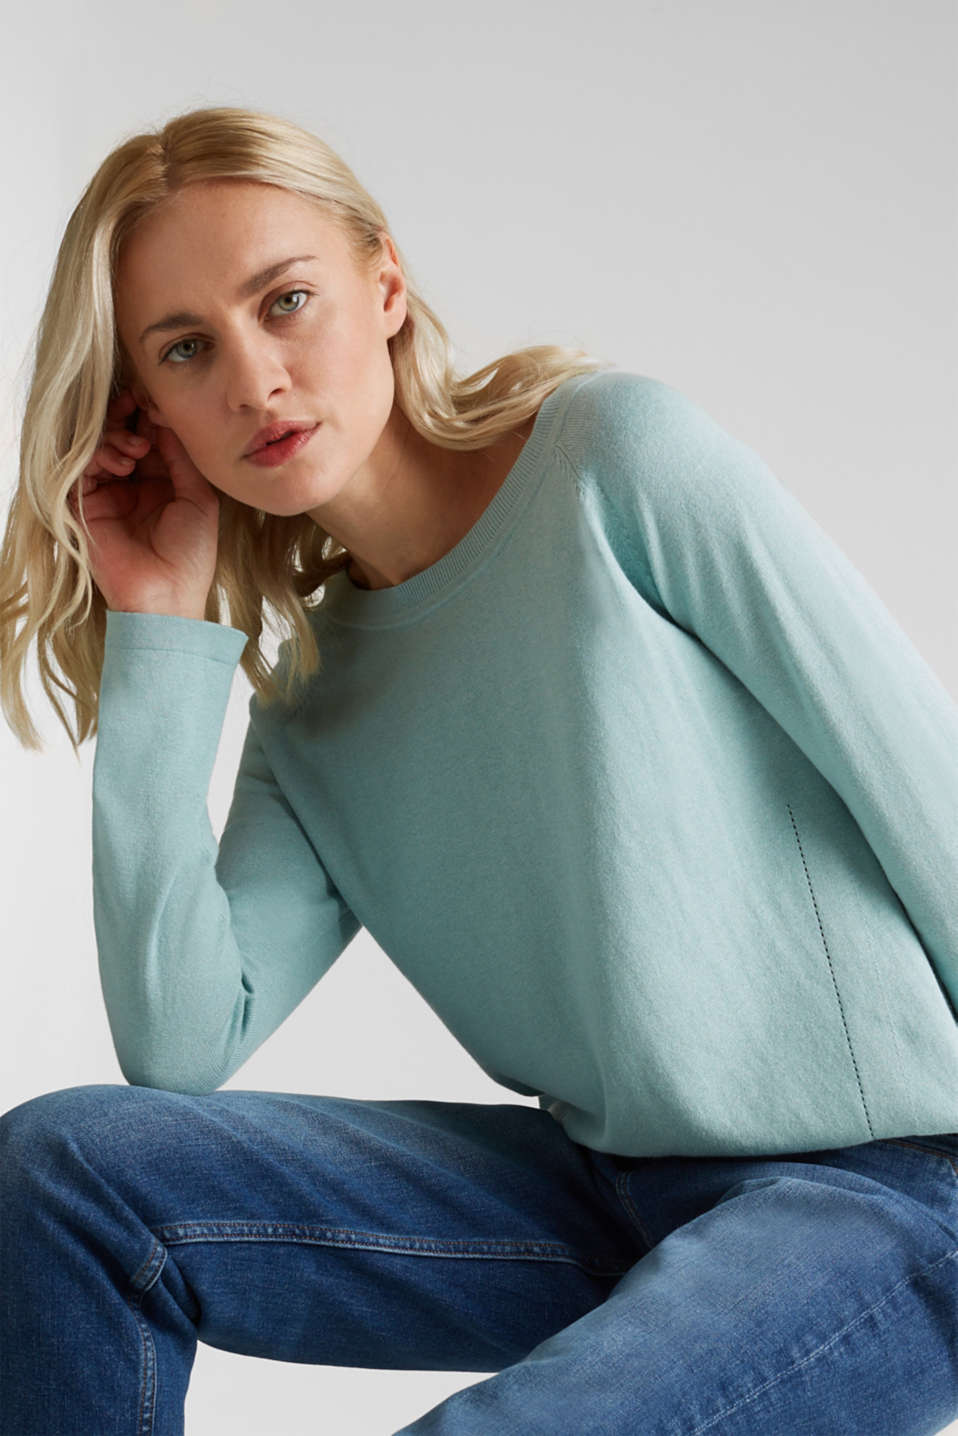 With linen: Jumper with open-work patterned details, LIGHT AQUA GREEN, detail image number 5